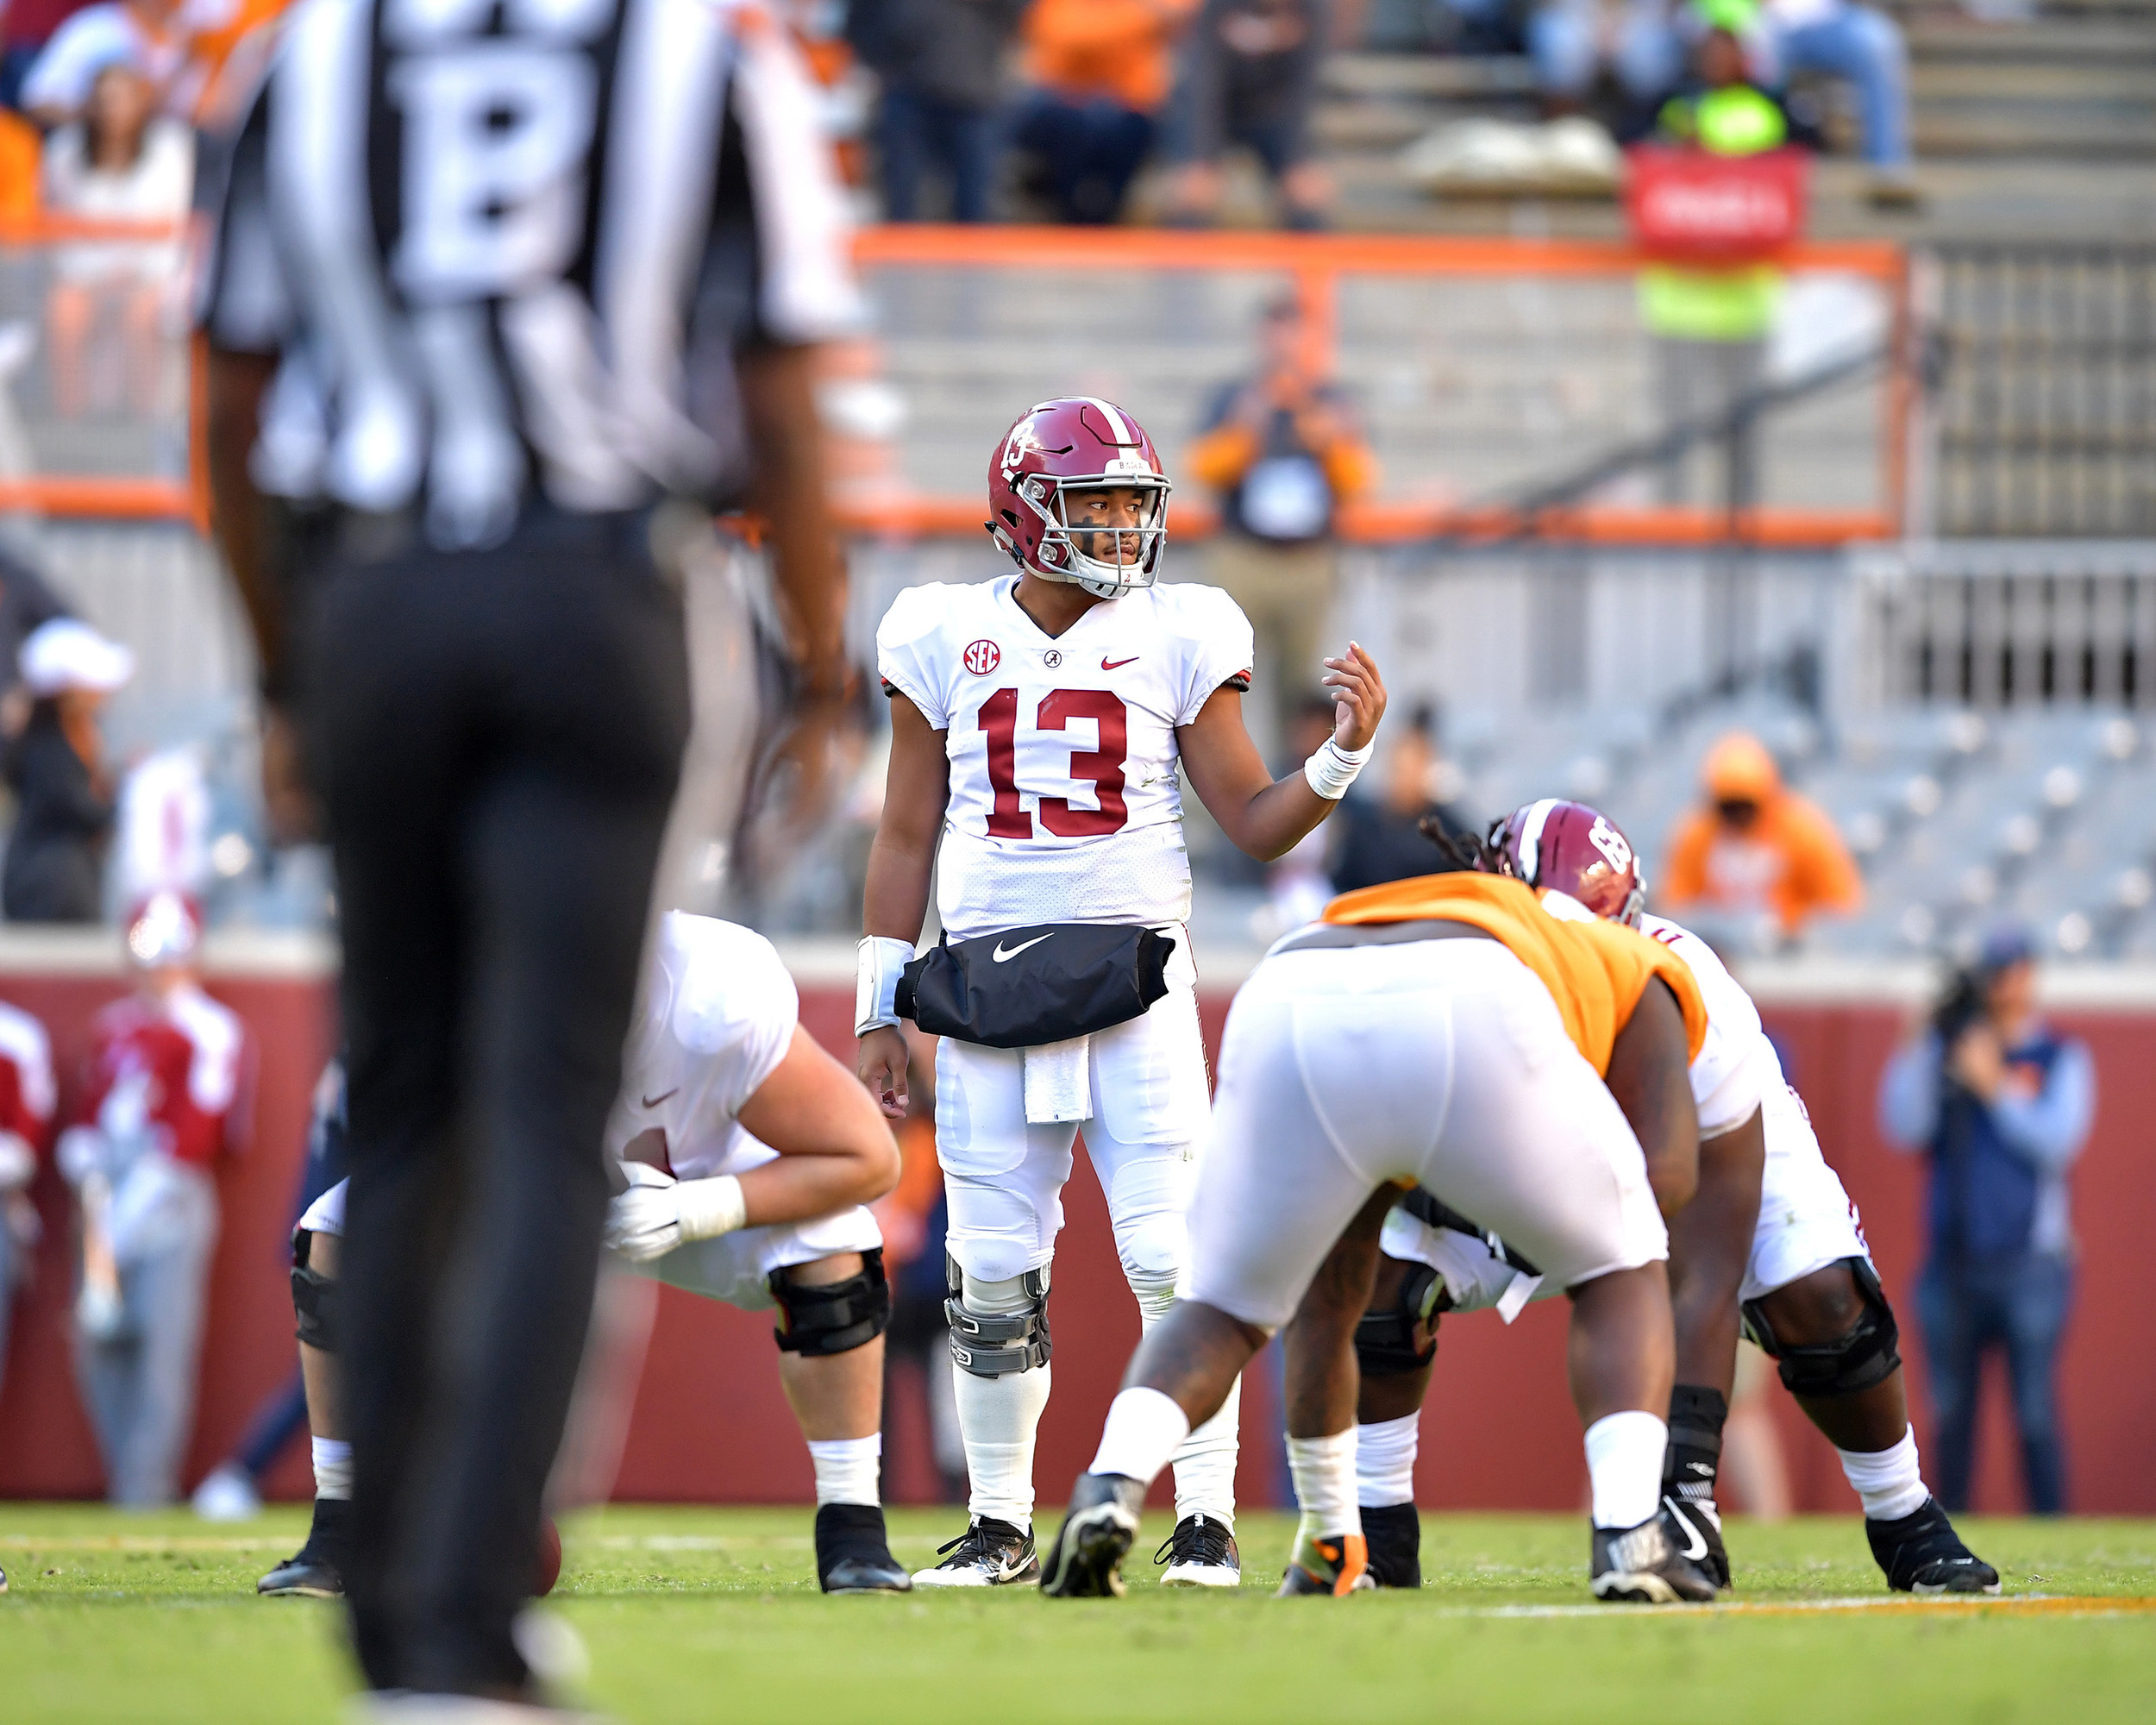 Alabama Crimson Tide quarterback Tua Tagovailoa (13) makes an adjustment at the line of scrimmage in the second quarter of the Alabama at Tennessee NCAA football game on Saturday, Oct. 20, 2018, at Neyland Stadium in Knoxville. Tenn. Alabama wins 58-21. (Photo by Lee Walls)